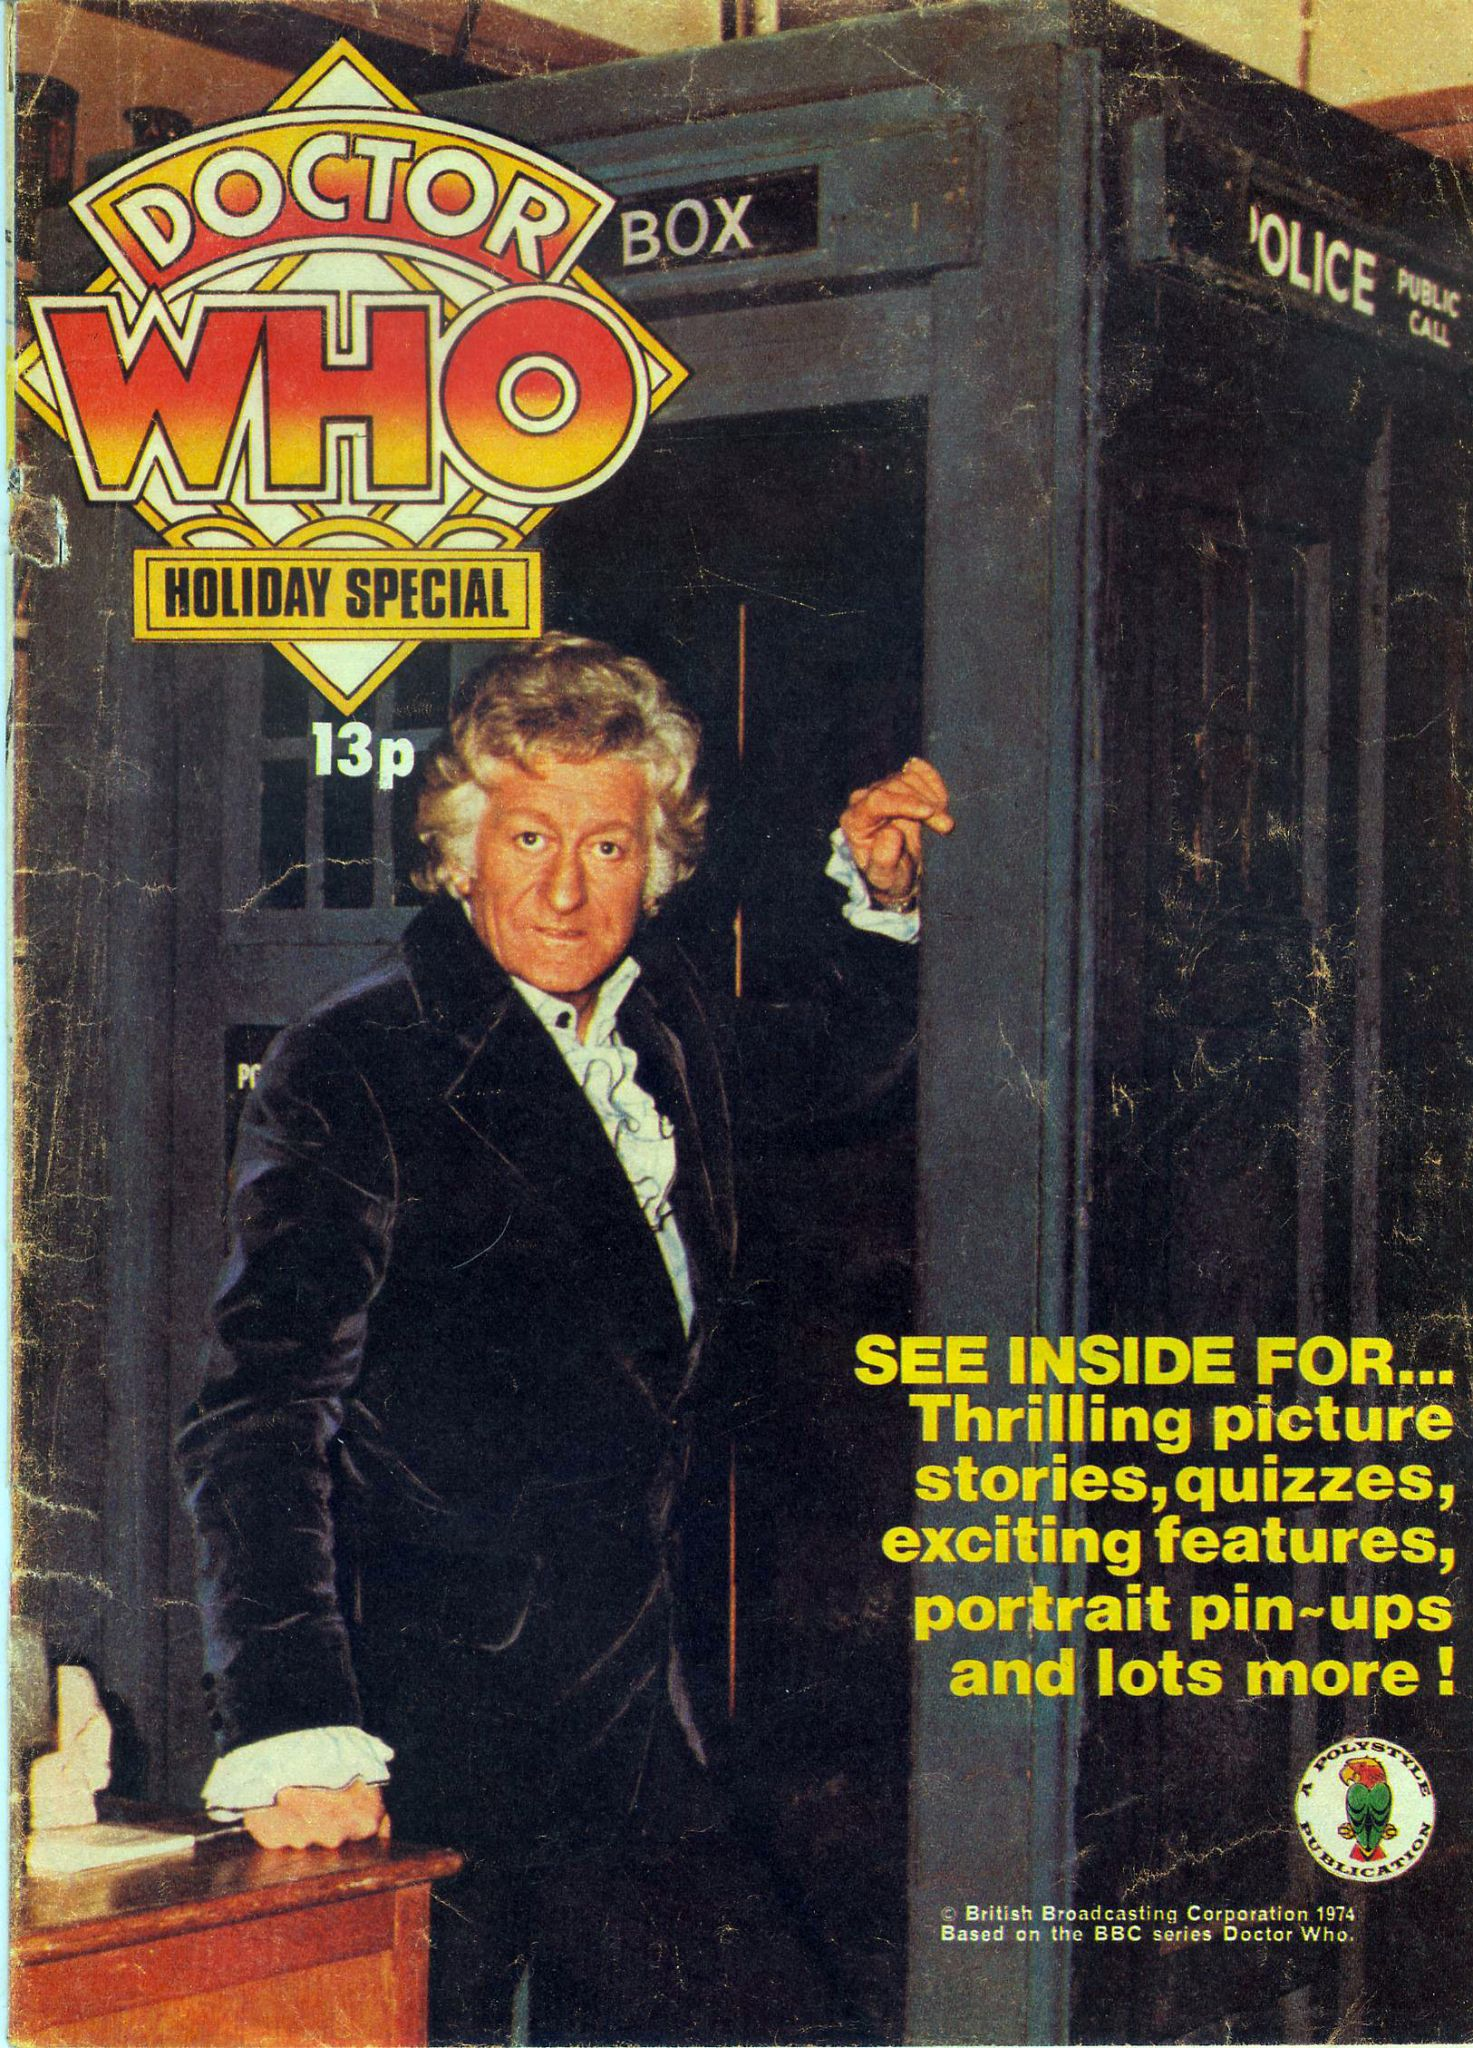 doctor who holiday special 1974.jpg